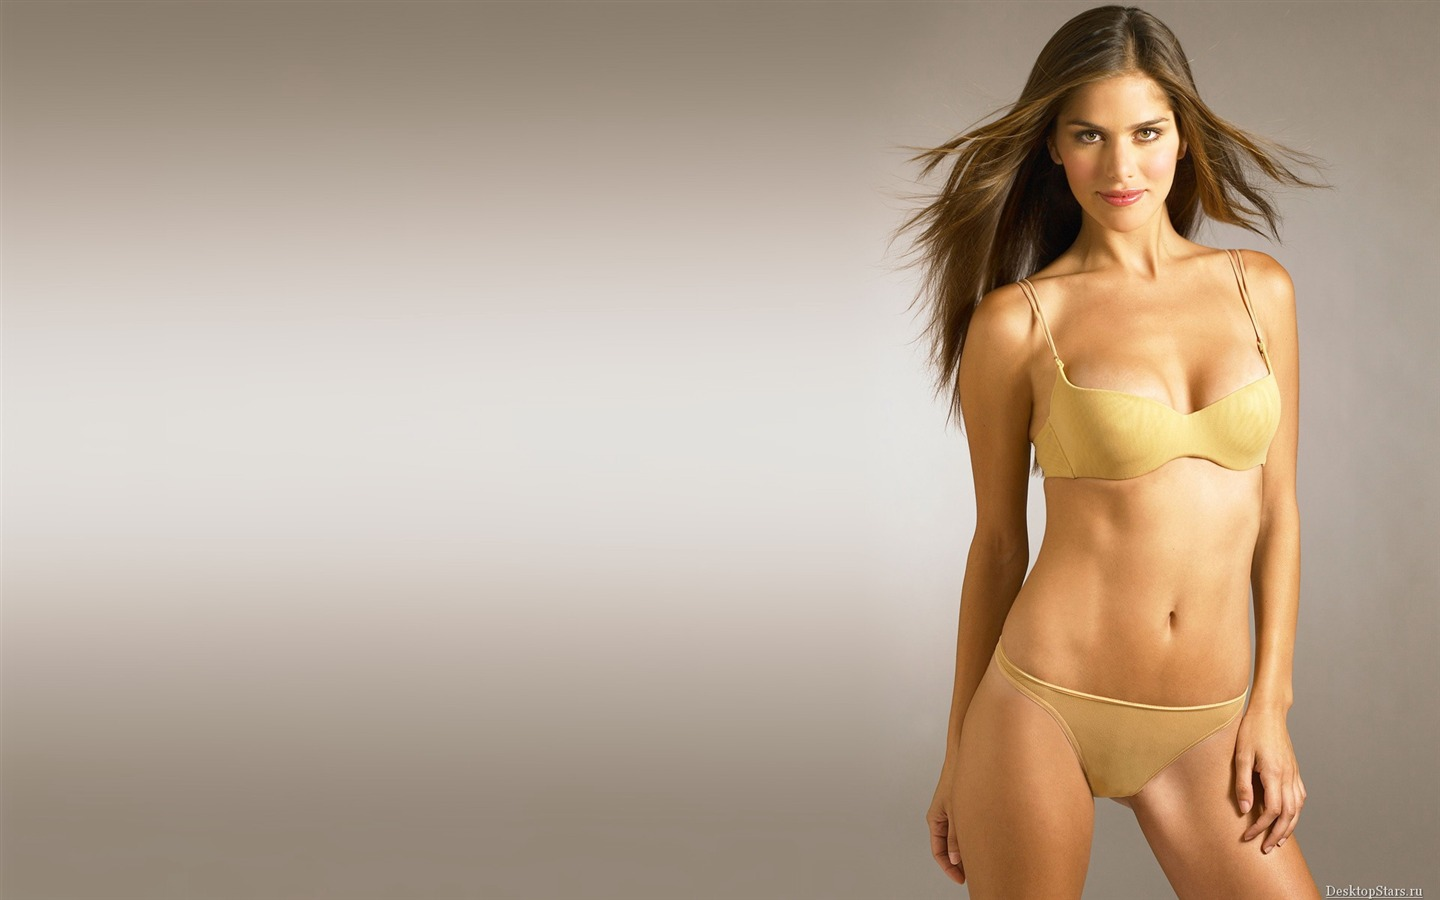 Anahi Gonzales #037 - 1440x900 Wallpapers Pictures Photos Images